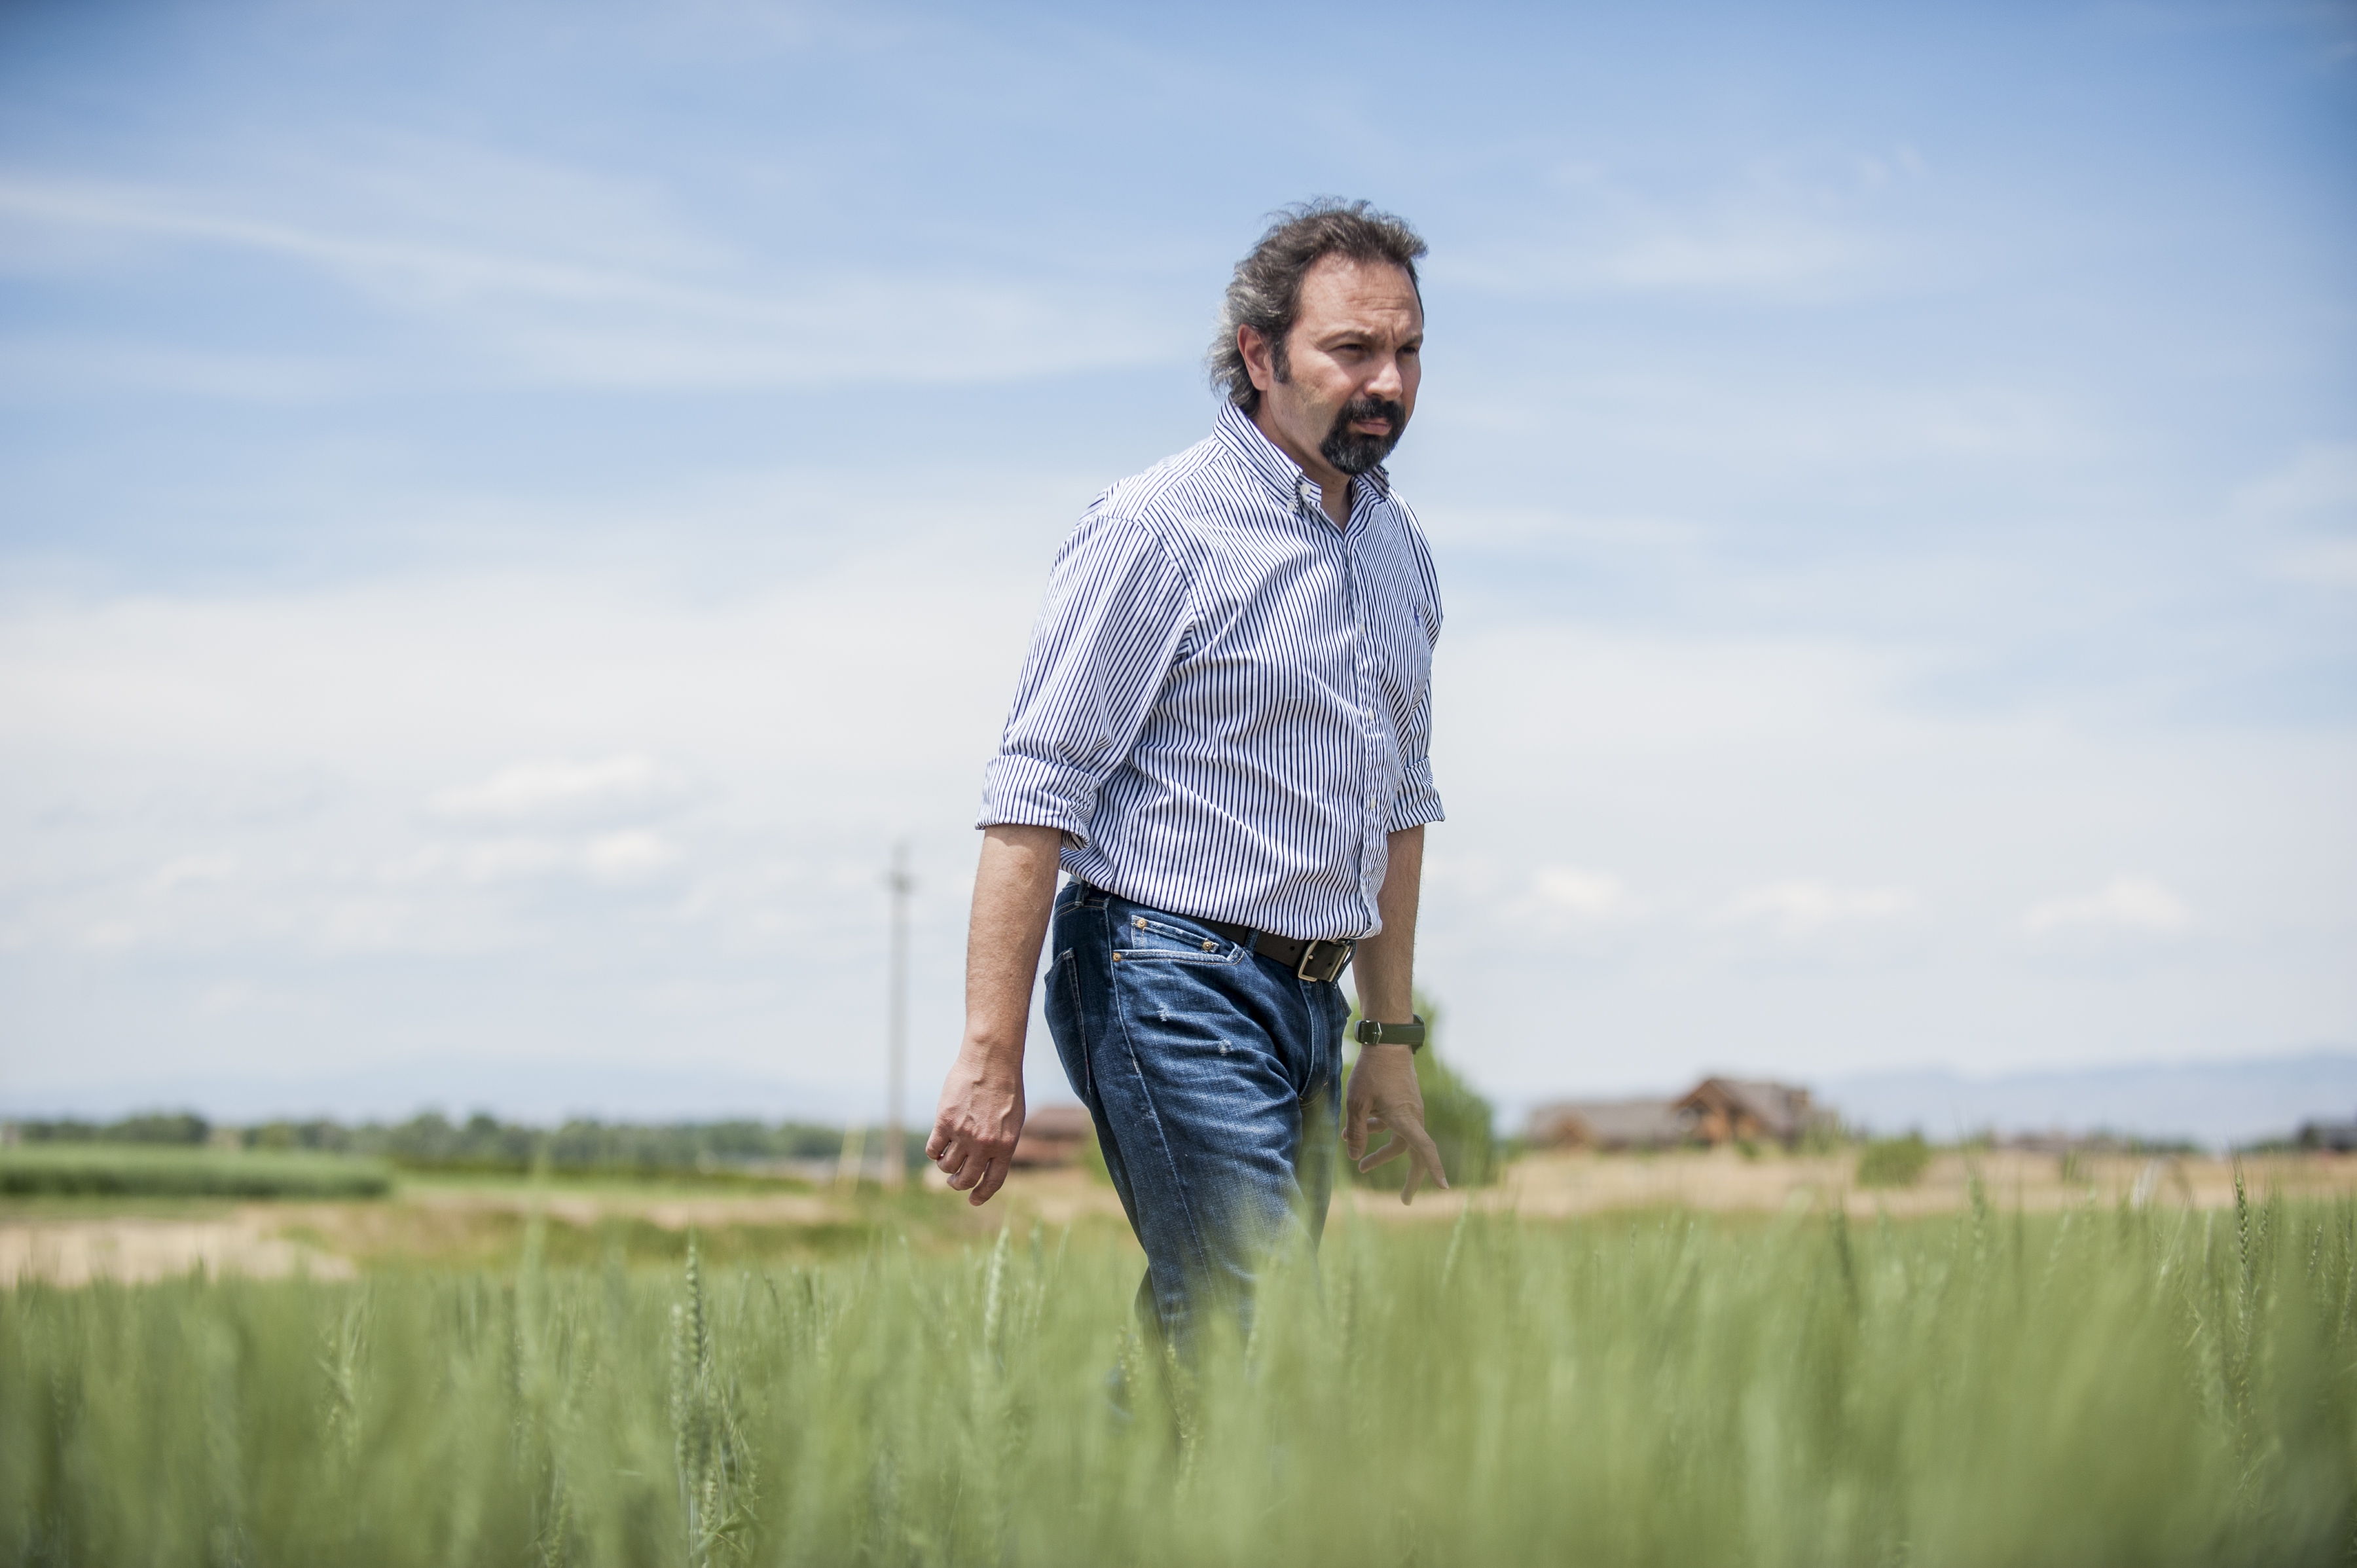 Dr. Hikmet Budak walking in a wheat field